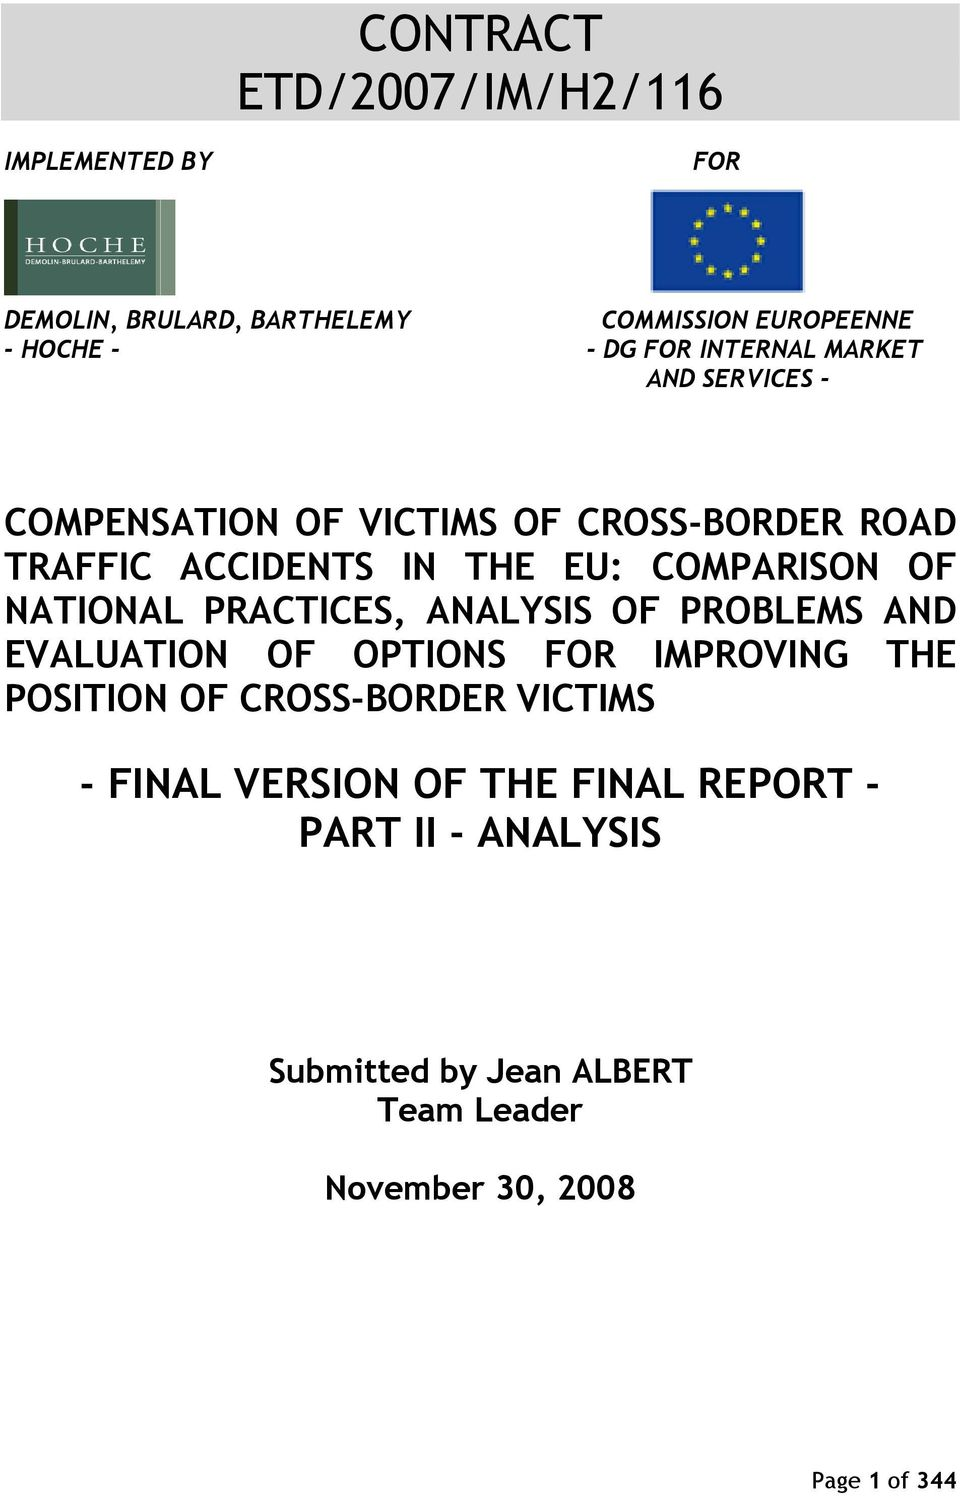 NATIONAL PRACTICES, ANALYSIS OF PROBLEMS AND EVALUATION OF OPTIONS FOR IMPROVING THE POSITION OF CROSS-BORDER VICTIMS -